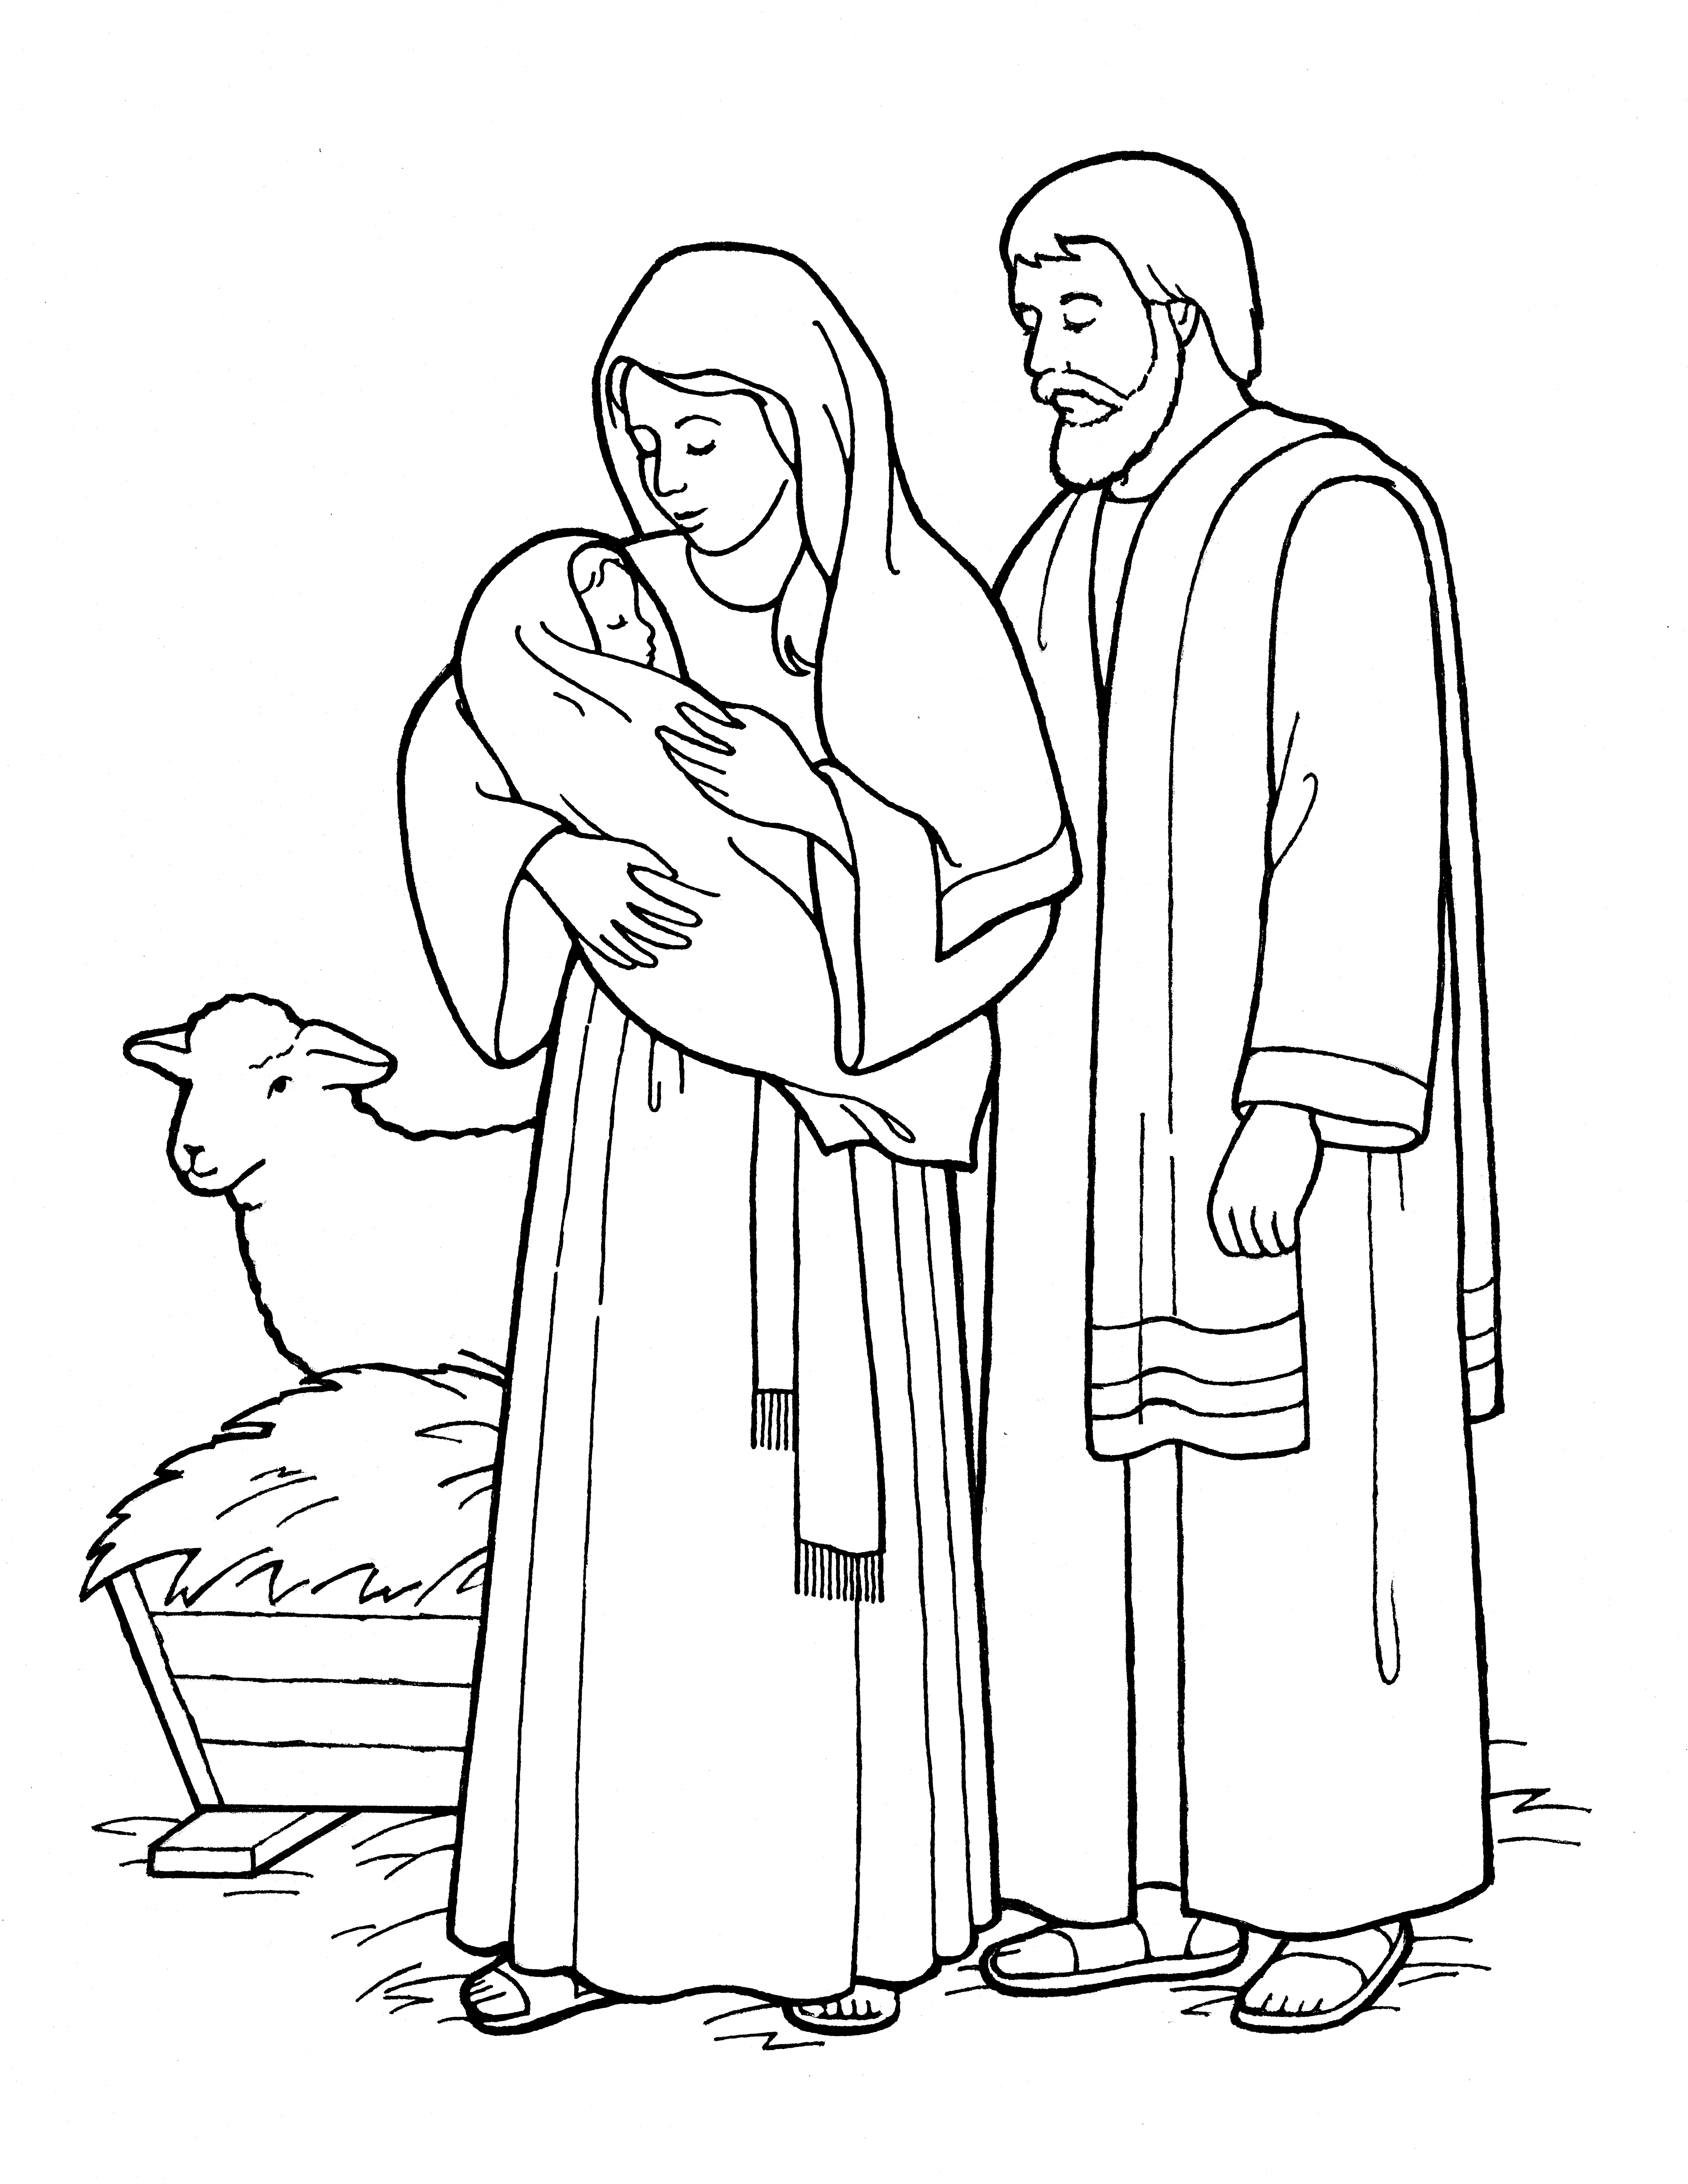 An illustration of the Nativity from the nursery manual Behold Your Little Ones (2008), page 95.